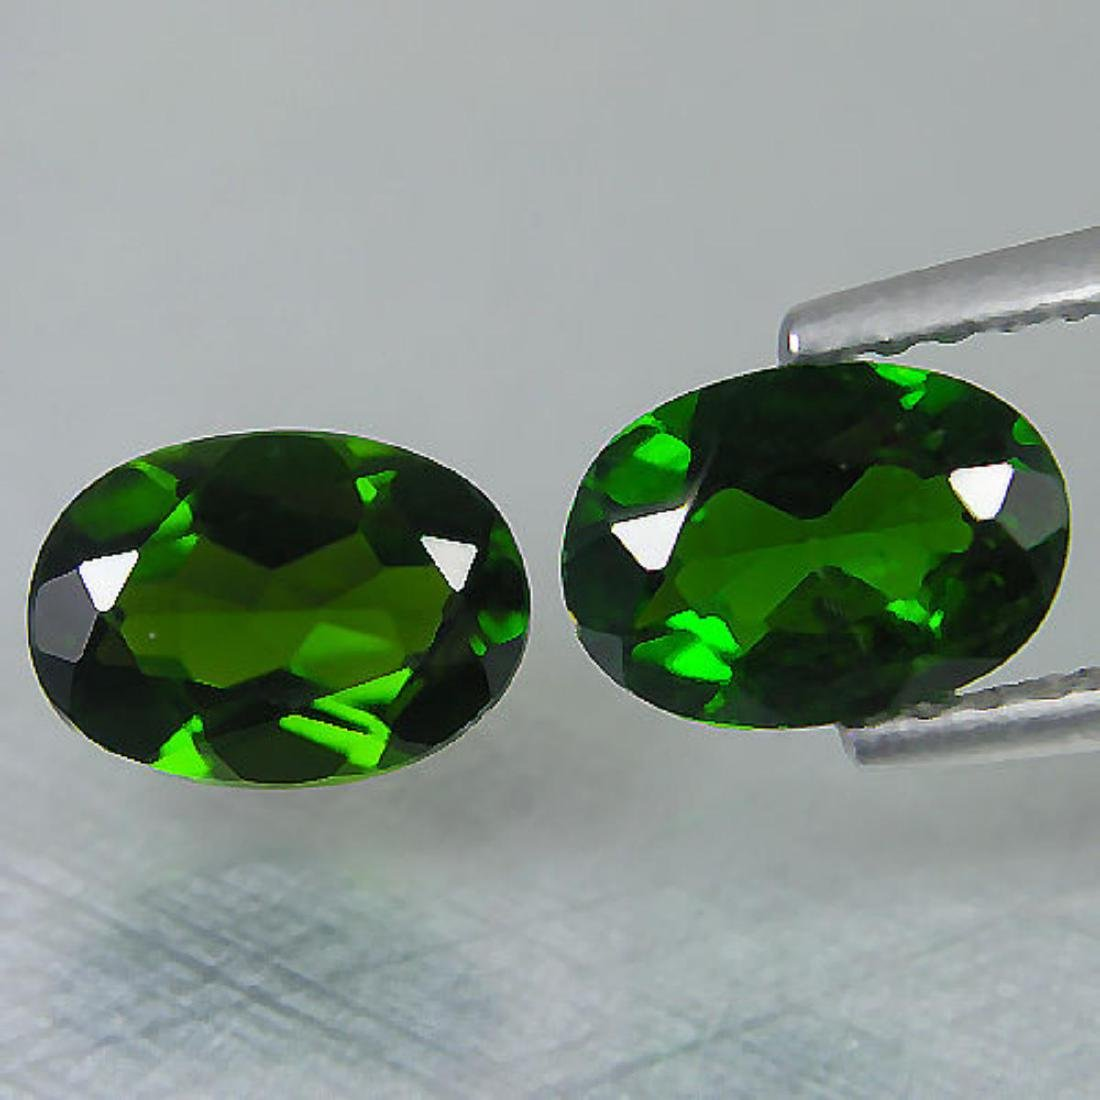 Natural Green Chrome Diopside Pair 2.95 Carats